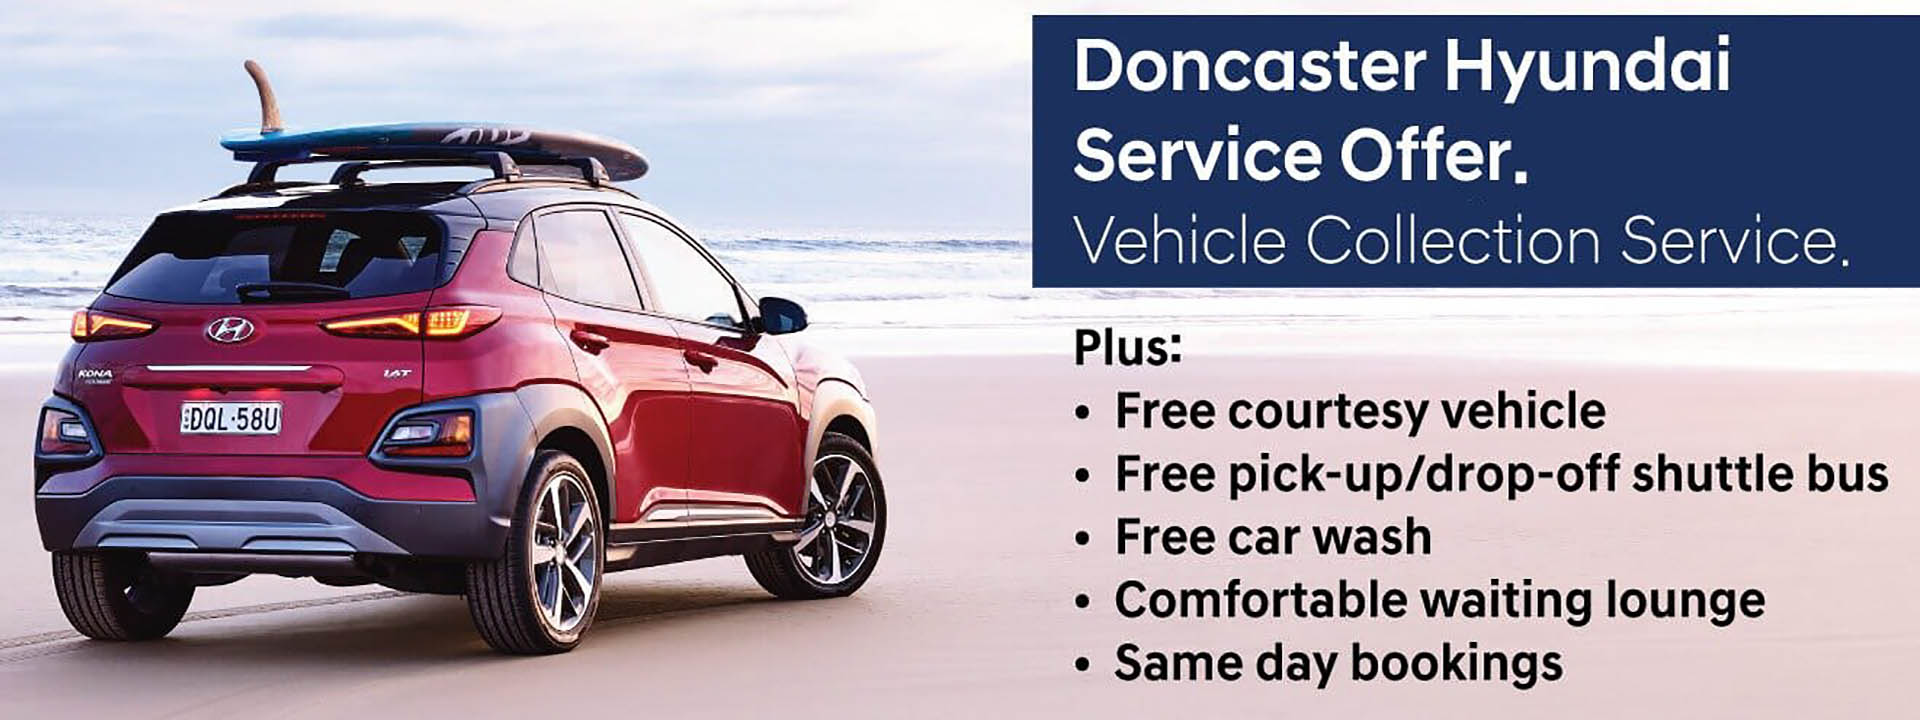 Doncaster Hyundai Service Offer